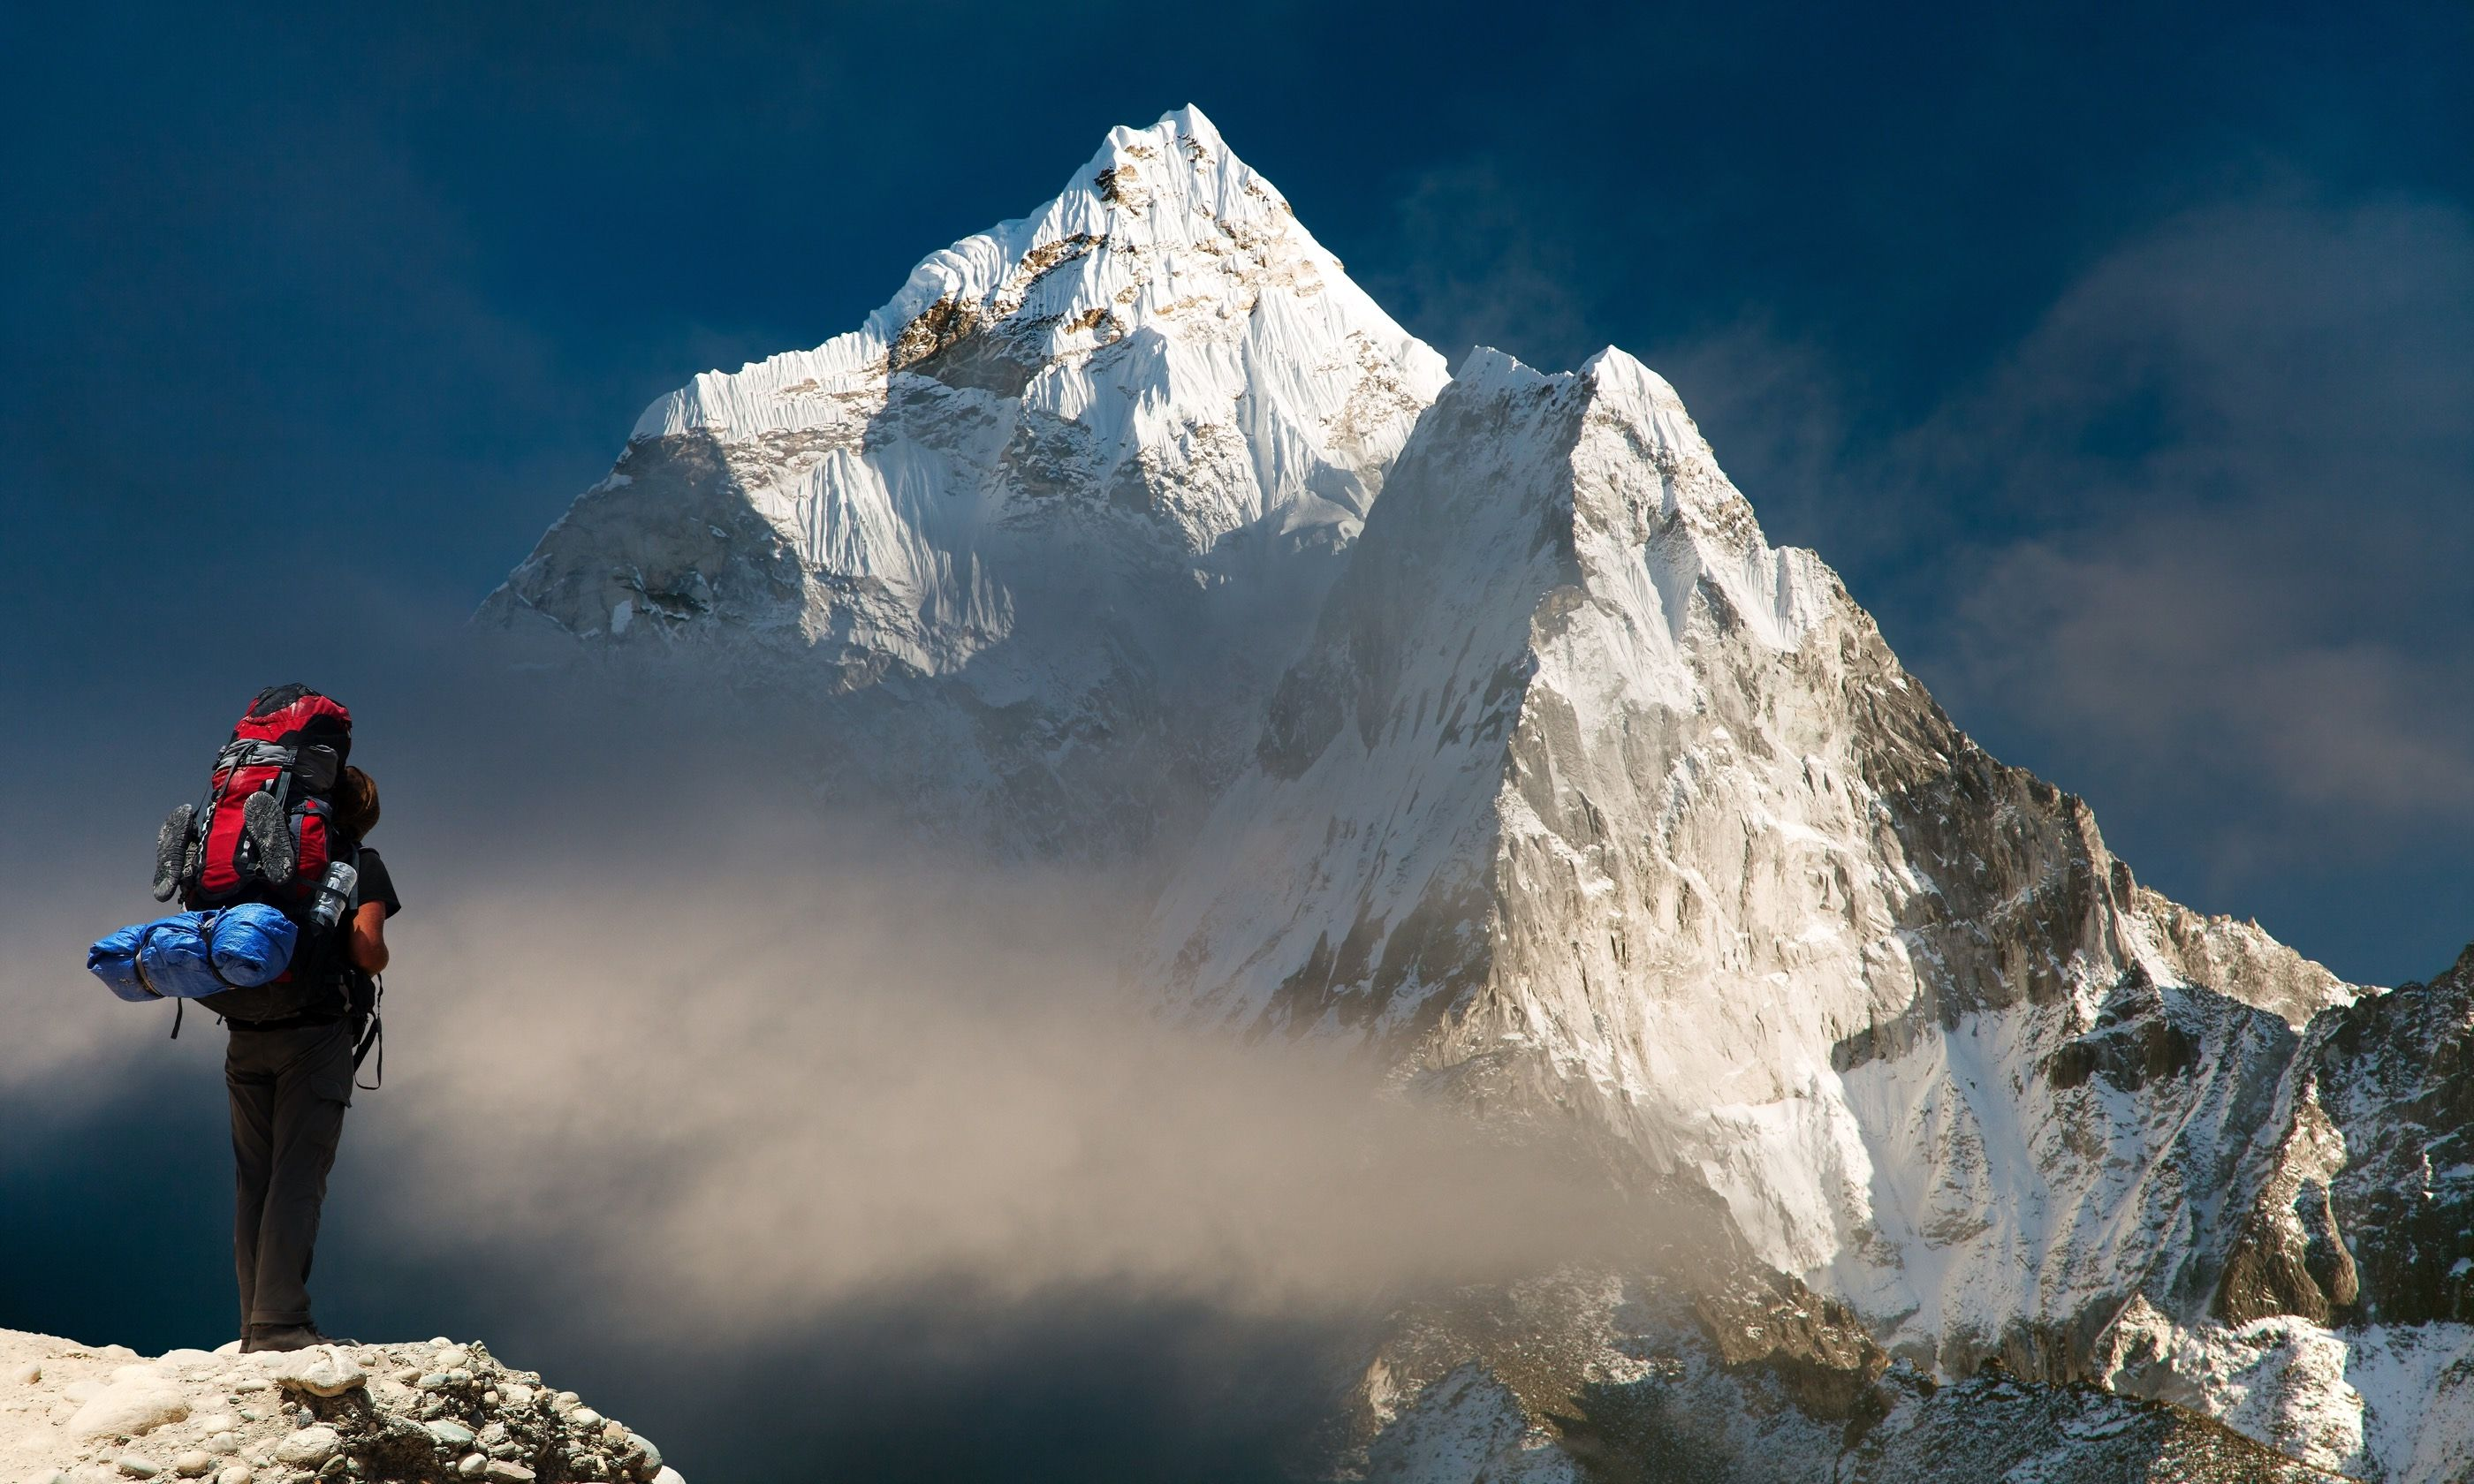 Evening view of Ama Dablam (Shutterstock.com)